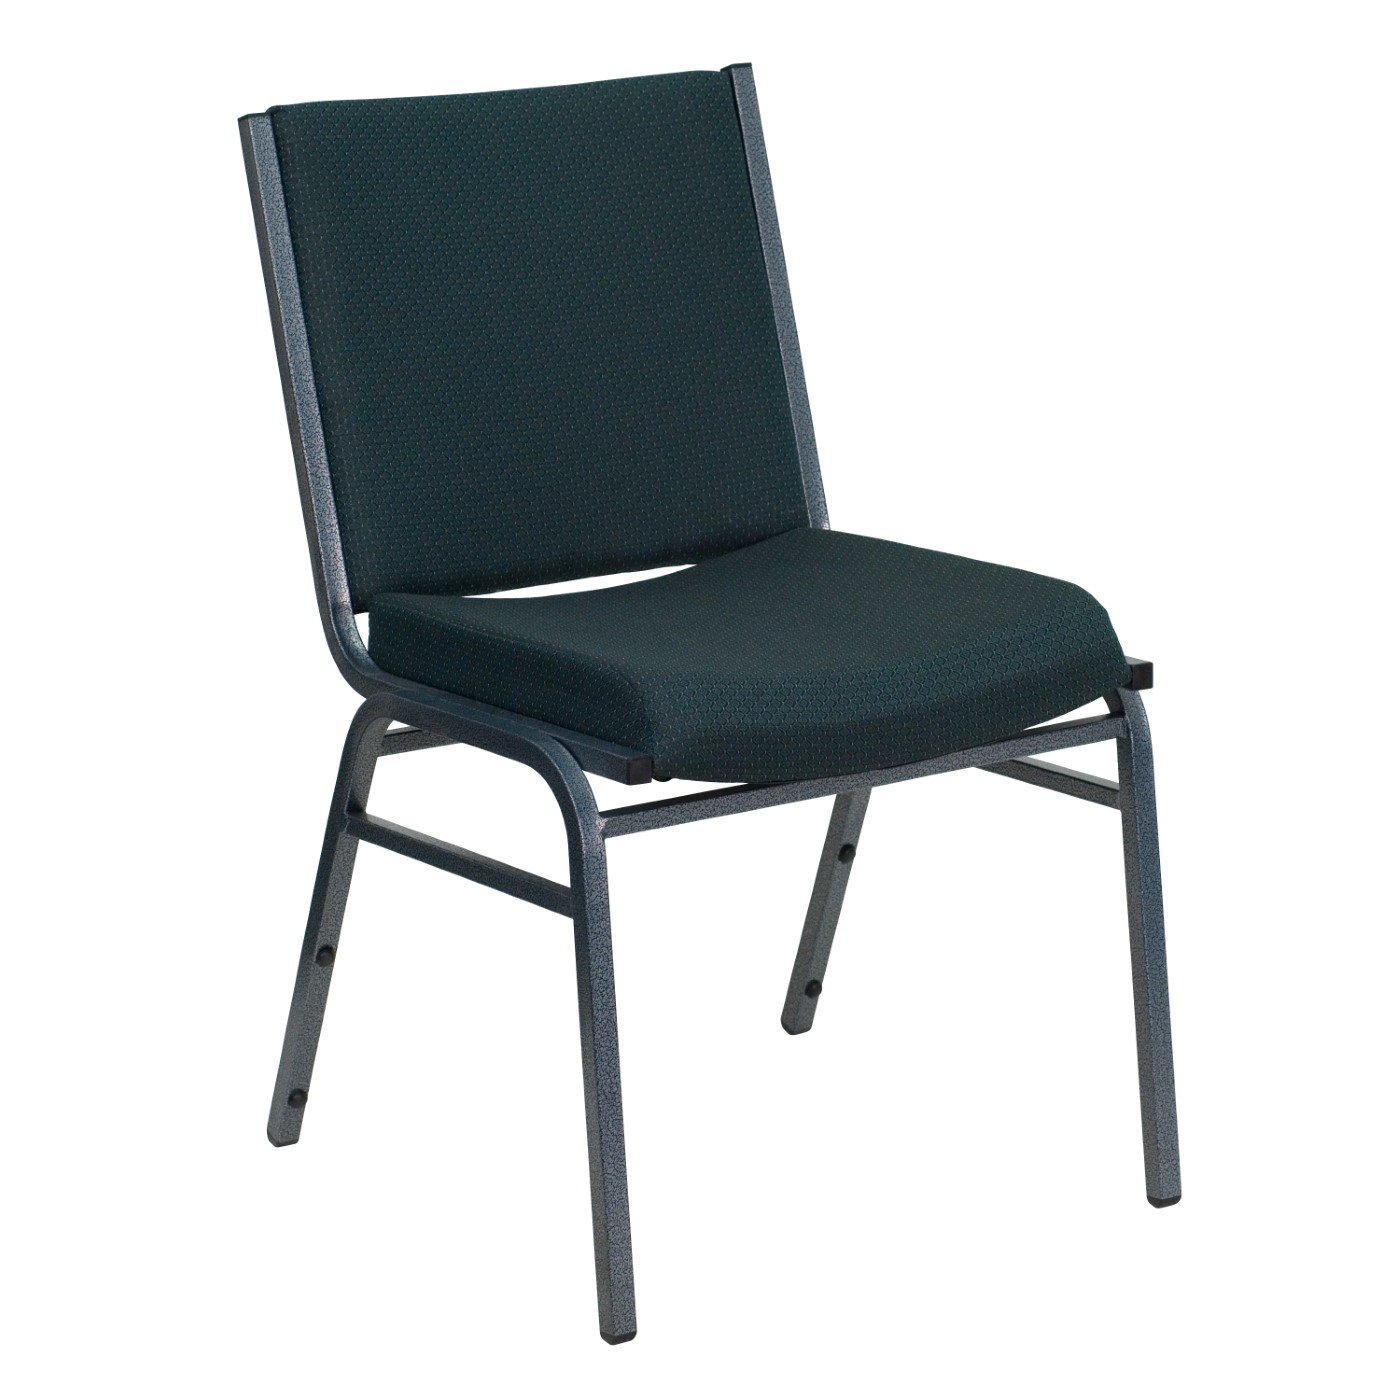 TOUGH ENOUGH Series Heavy Duty Green Patterned Fabric Stack Chair